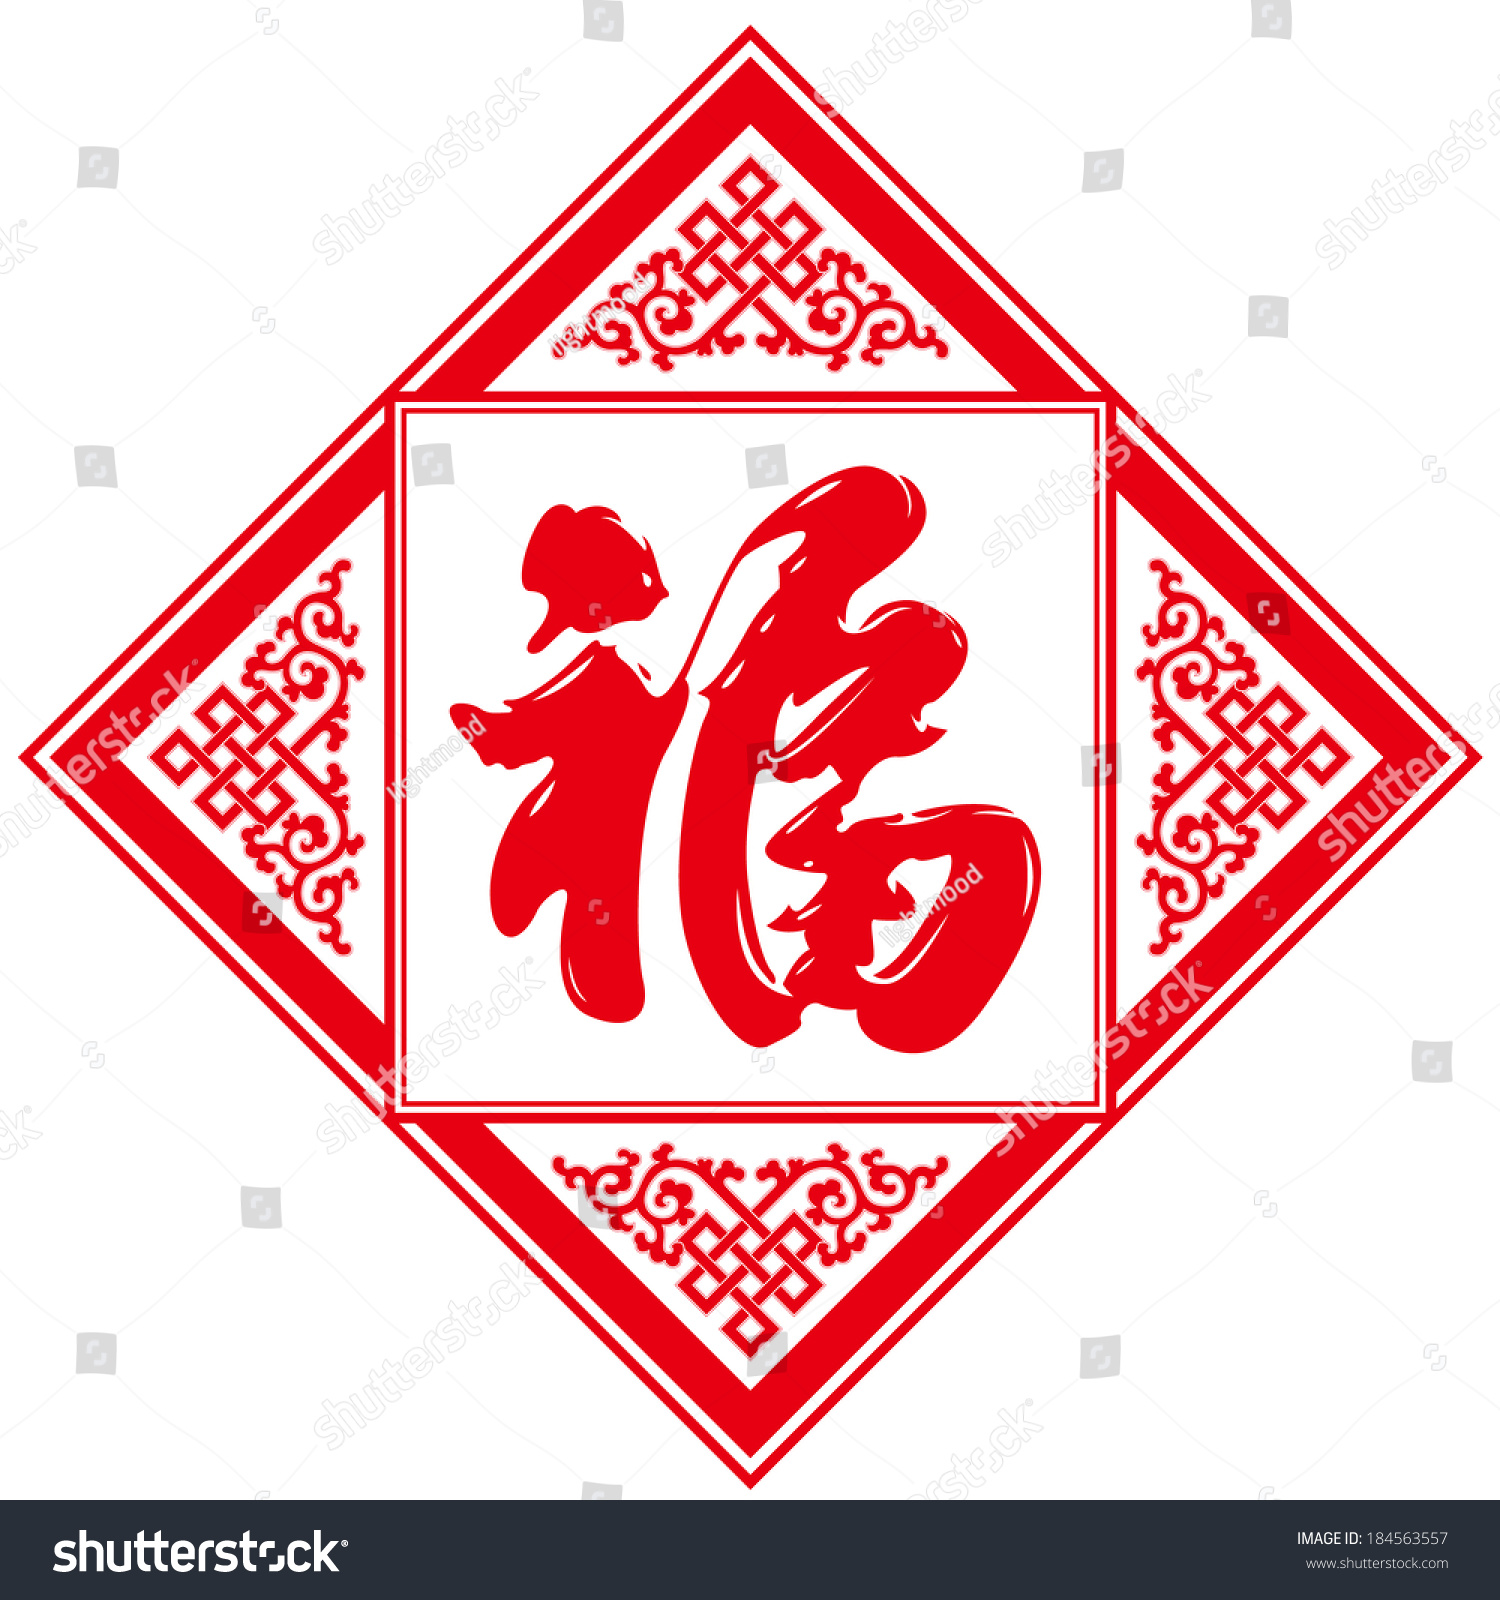 Fu characterspring festival symbolthe character fu stock vector fu character spring festival symbolthe character fu meaning good buycottarizona